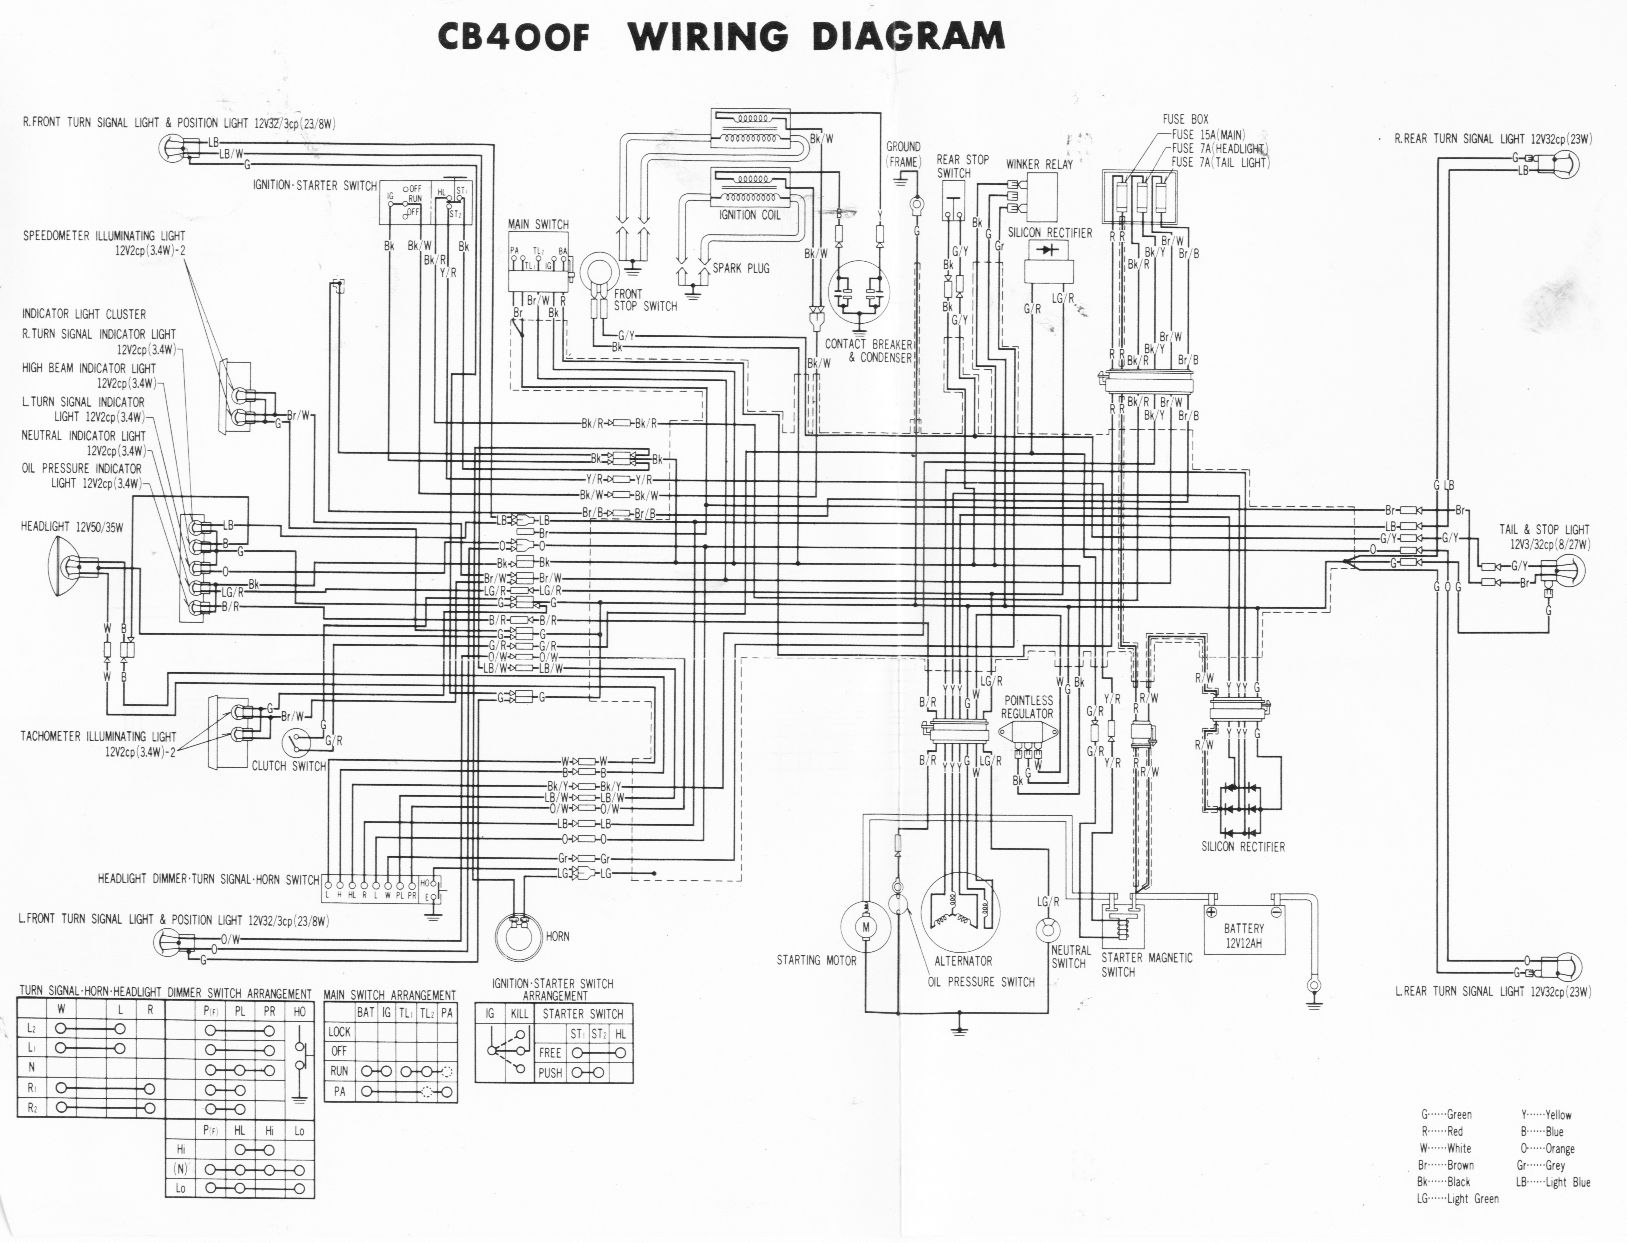 1977 honda gl1000 headlight wiring diagram wiring library 1977 Honda Ct70 Wiring Diagram cb400f rh manuals sohc4 net basic electrical wiring diagrams 1977 honda cb400f wiring diagram